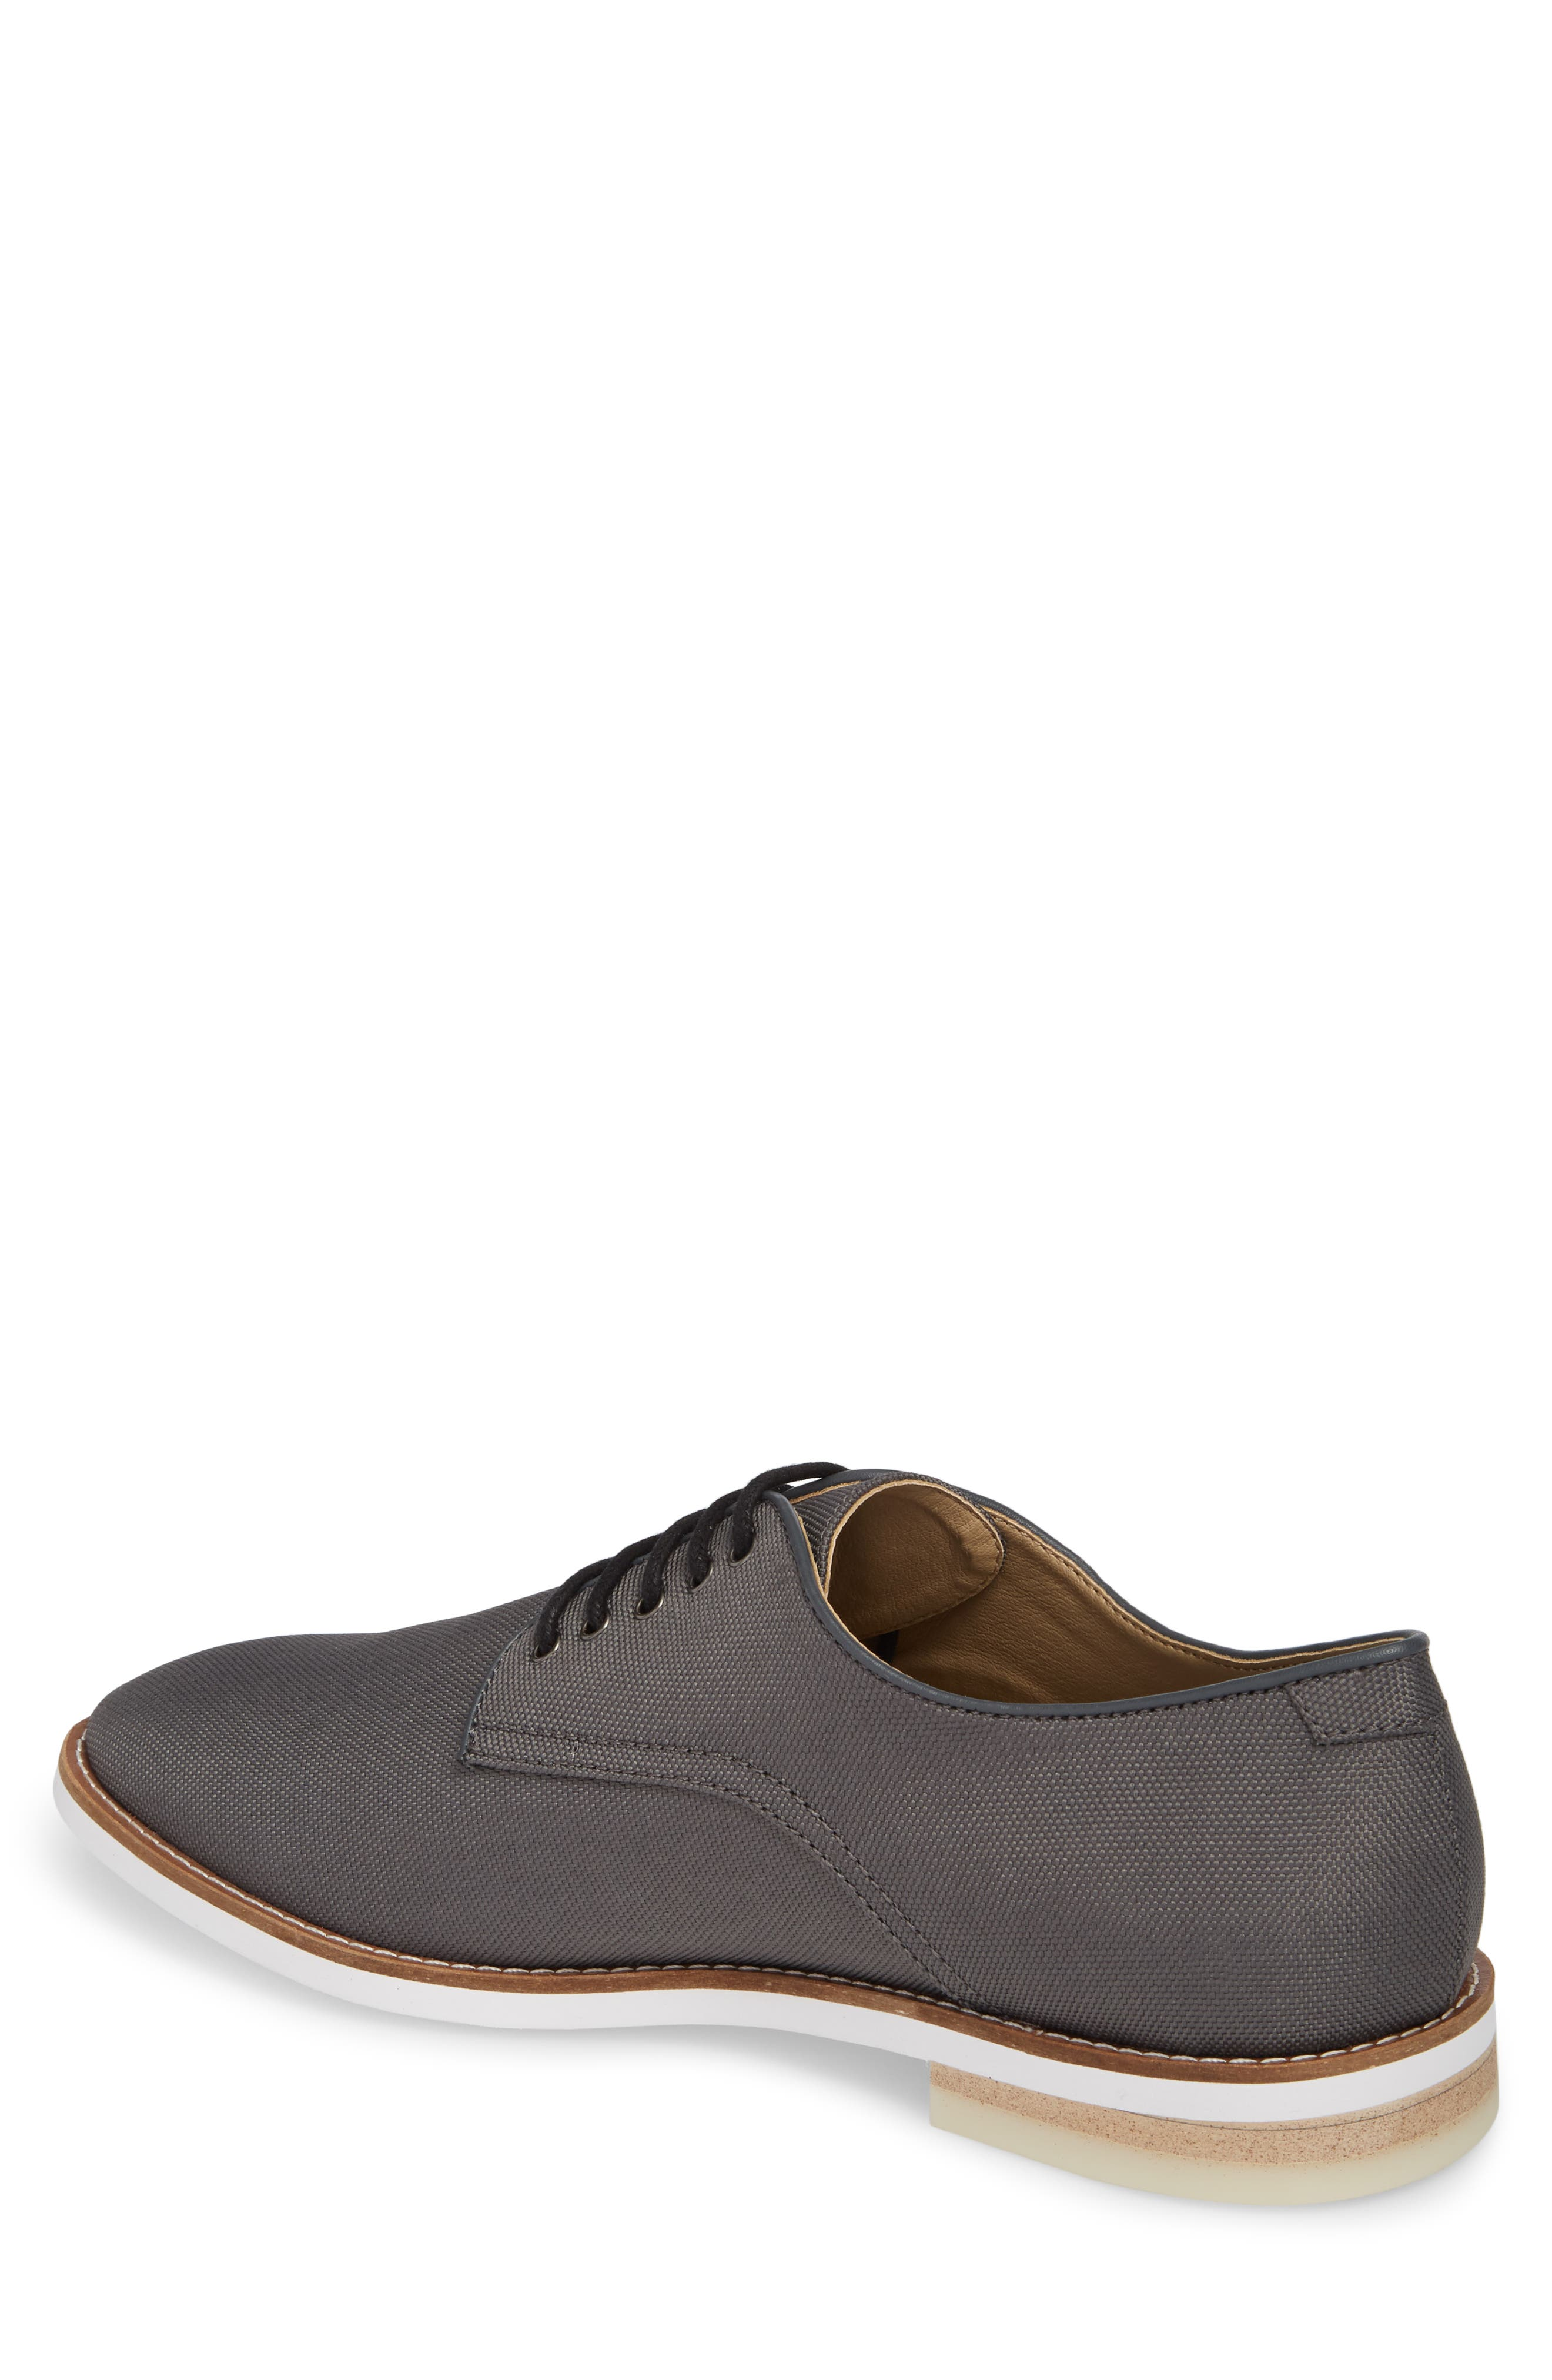 Atlee Plain Toe Derby,                             Alternate thumbnail 2, color,                             GREY SYNTHETIC